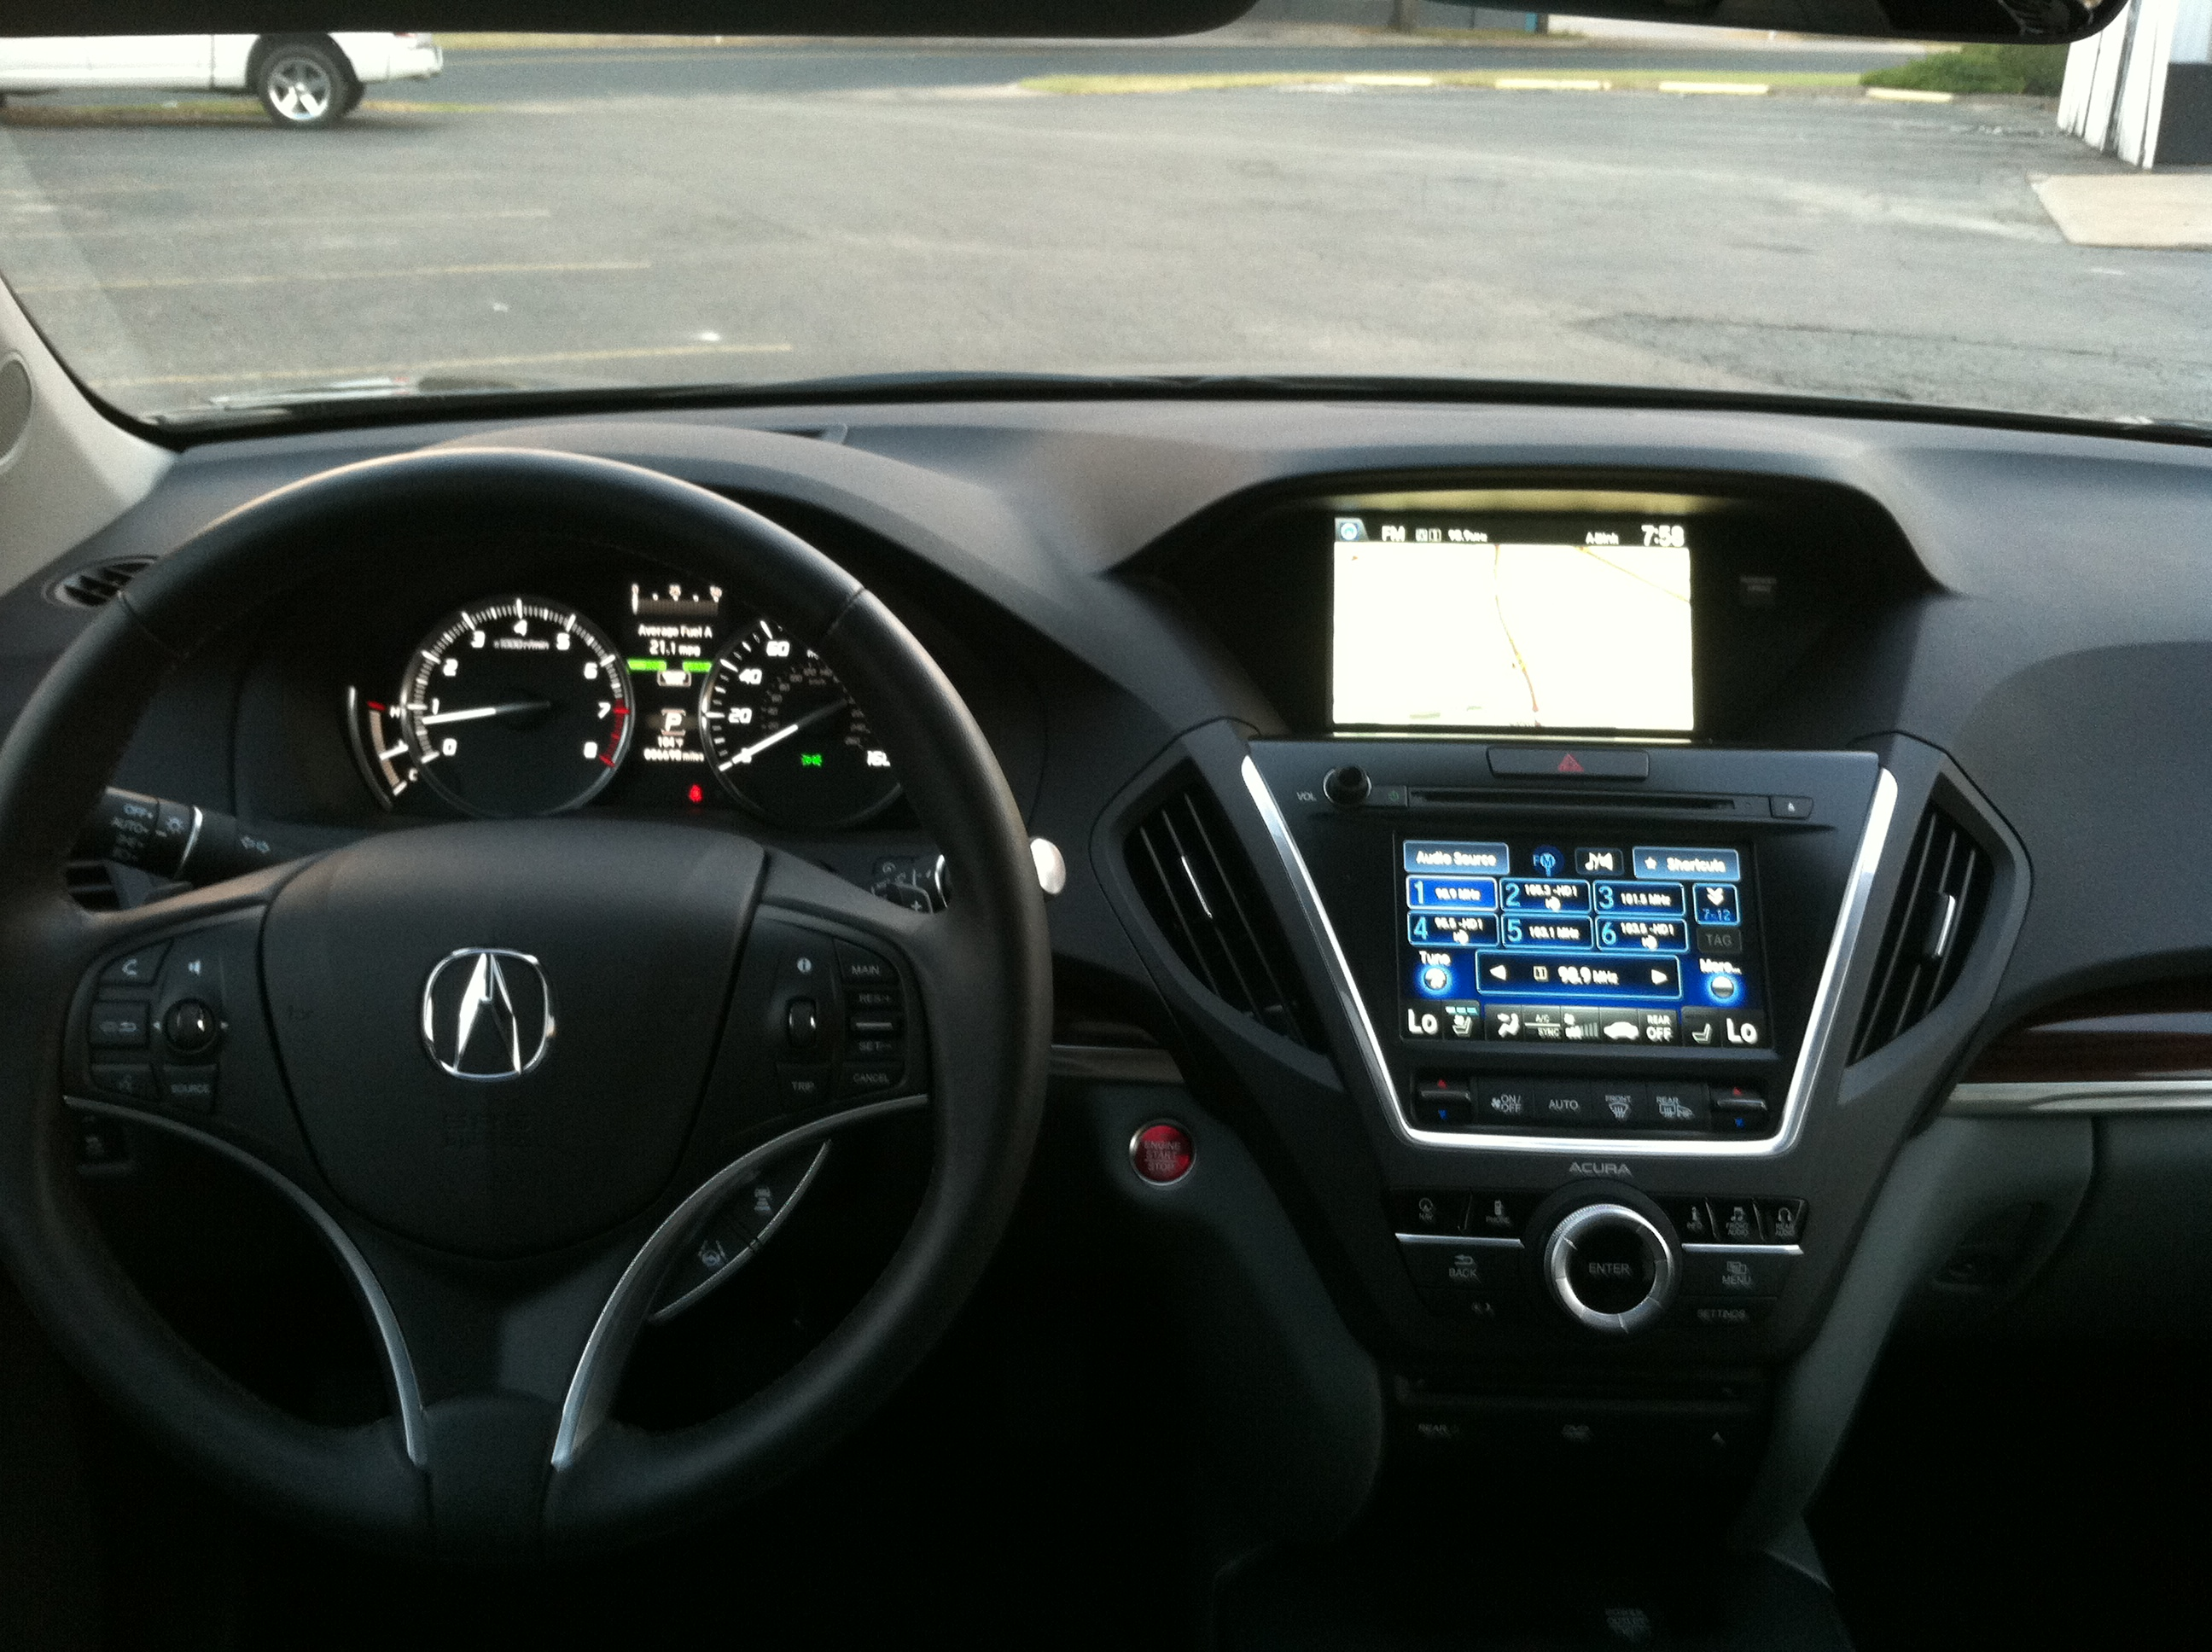 traveling pleasure road acura trips mdx review for a the tdadacuramdxfeature family dad trip guilty reviews part